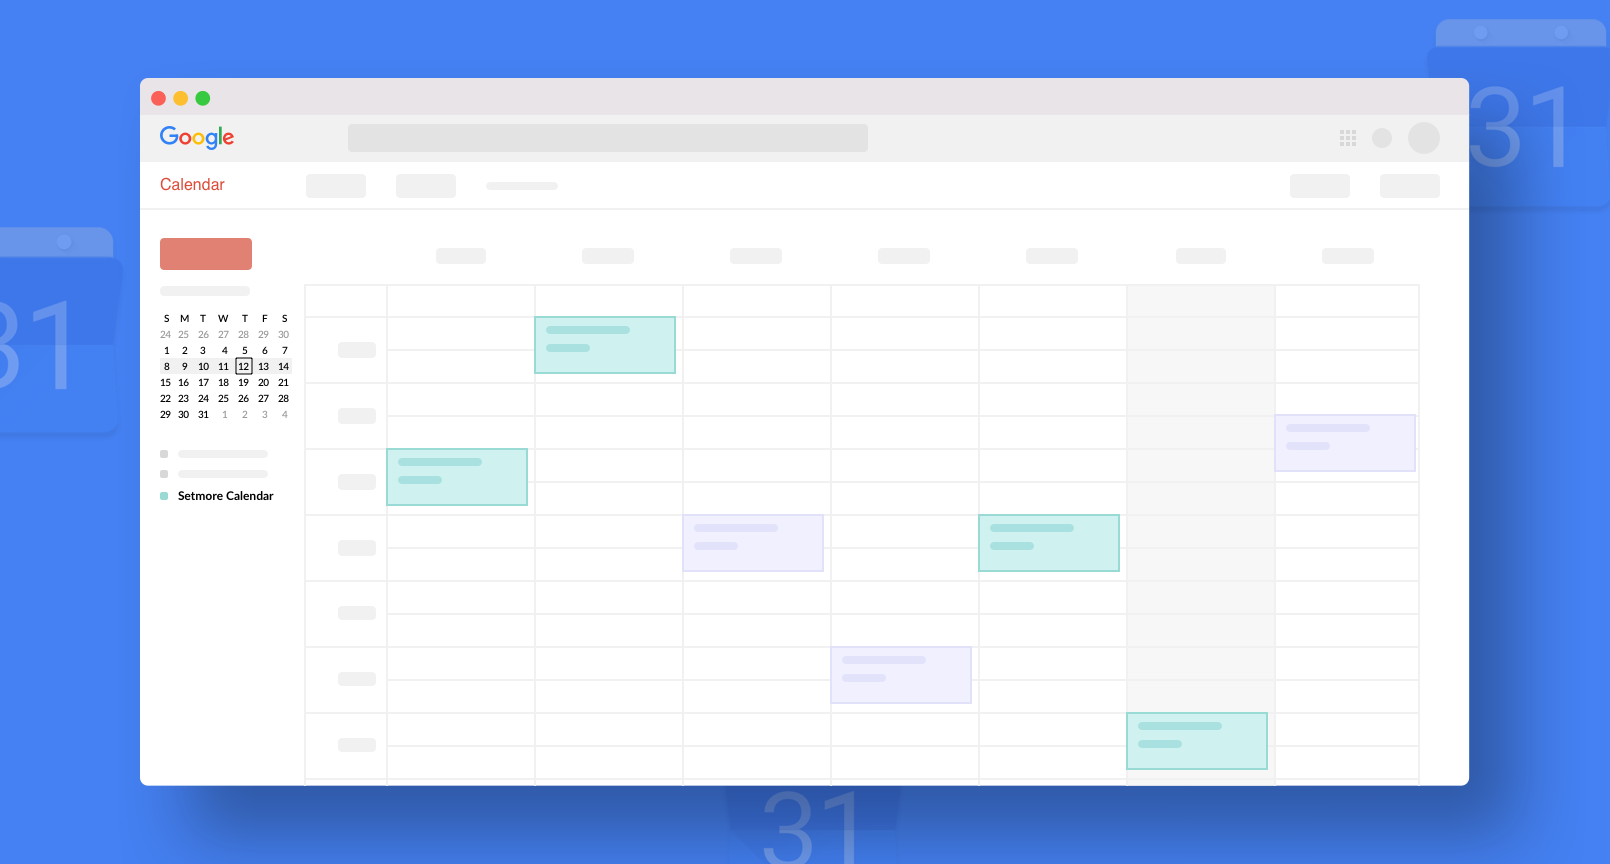 Google Calendar Integration with Setmore